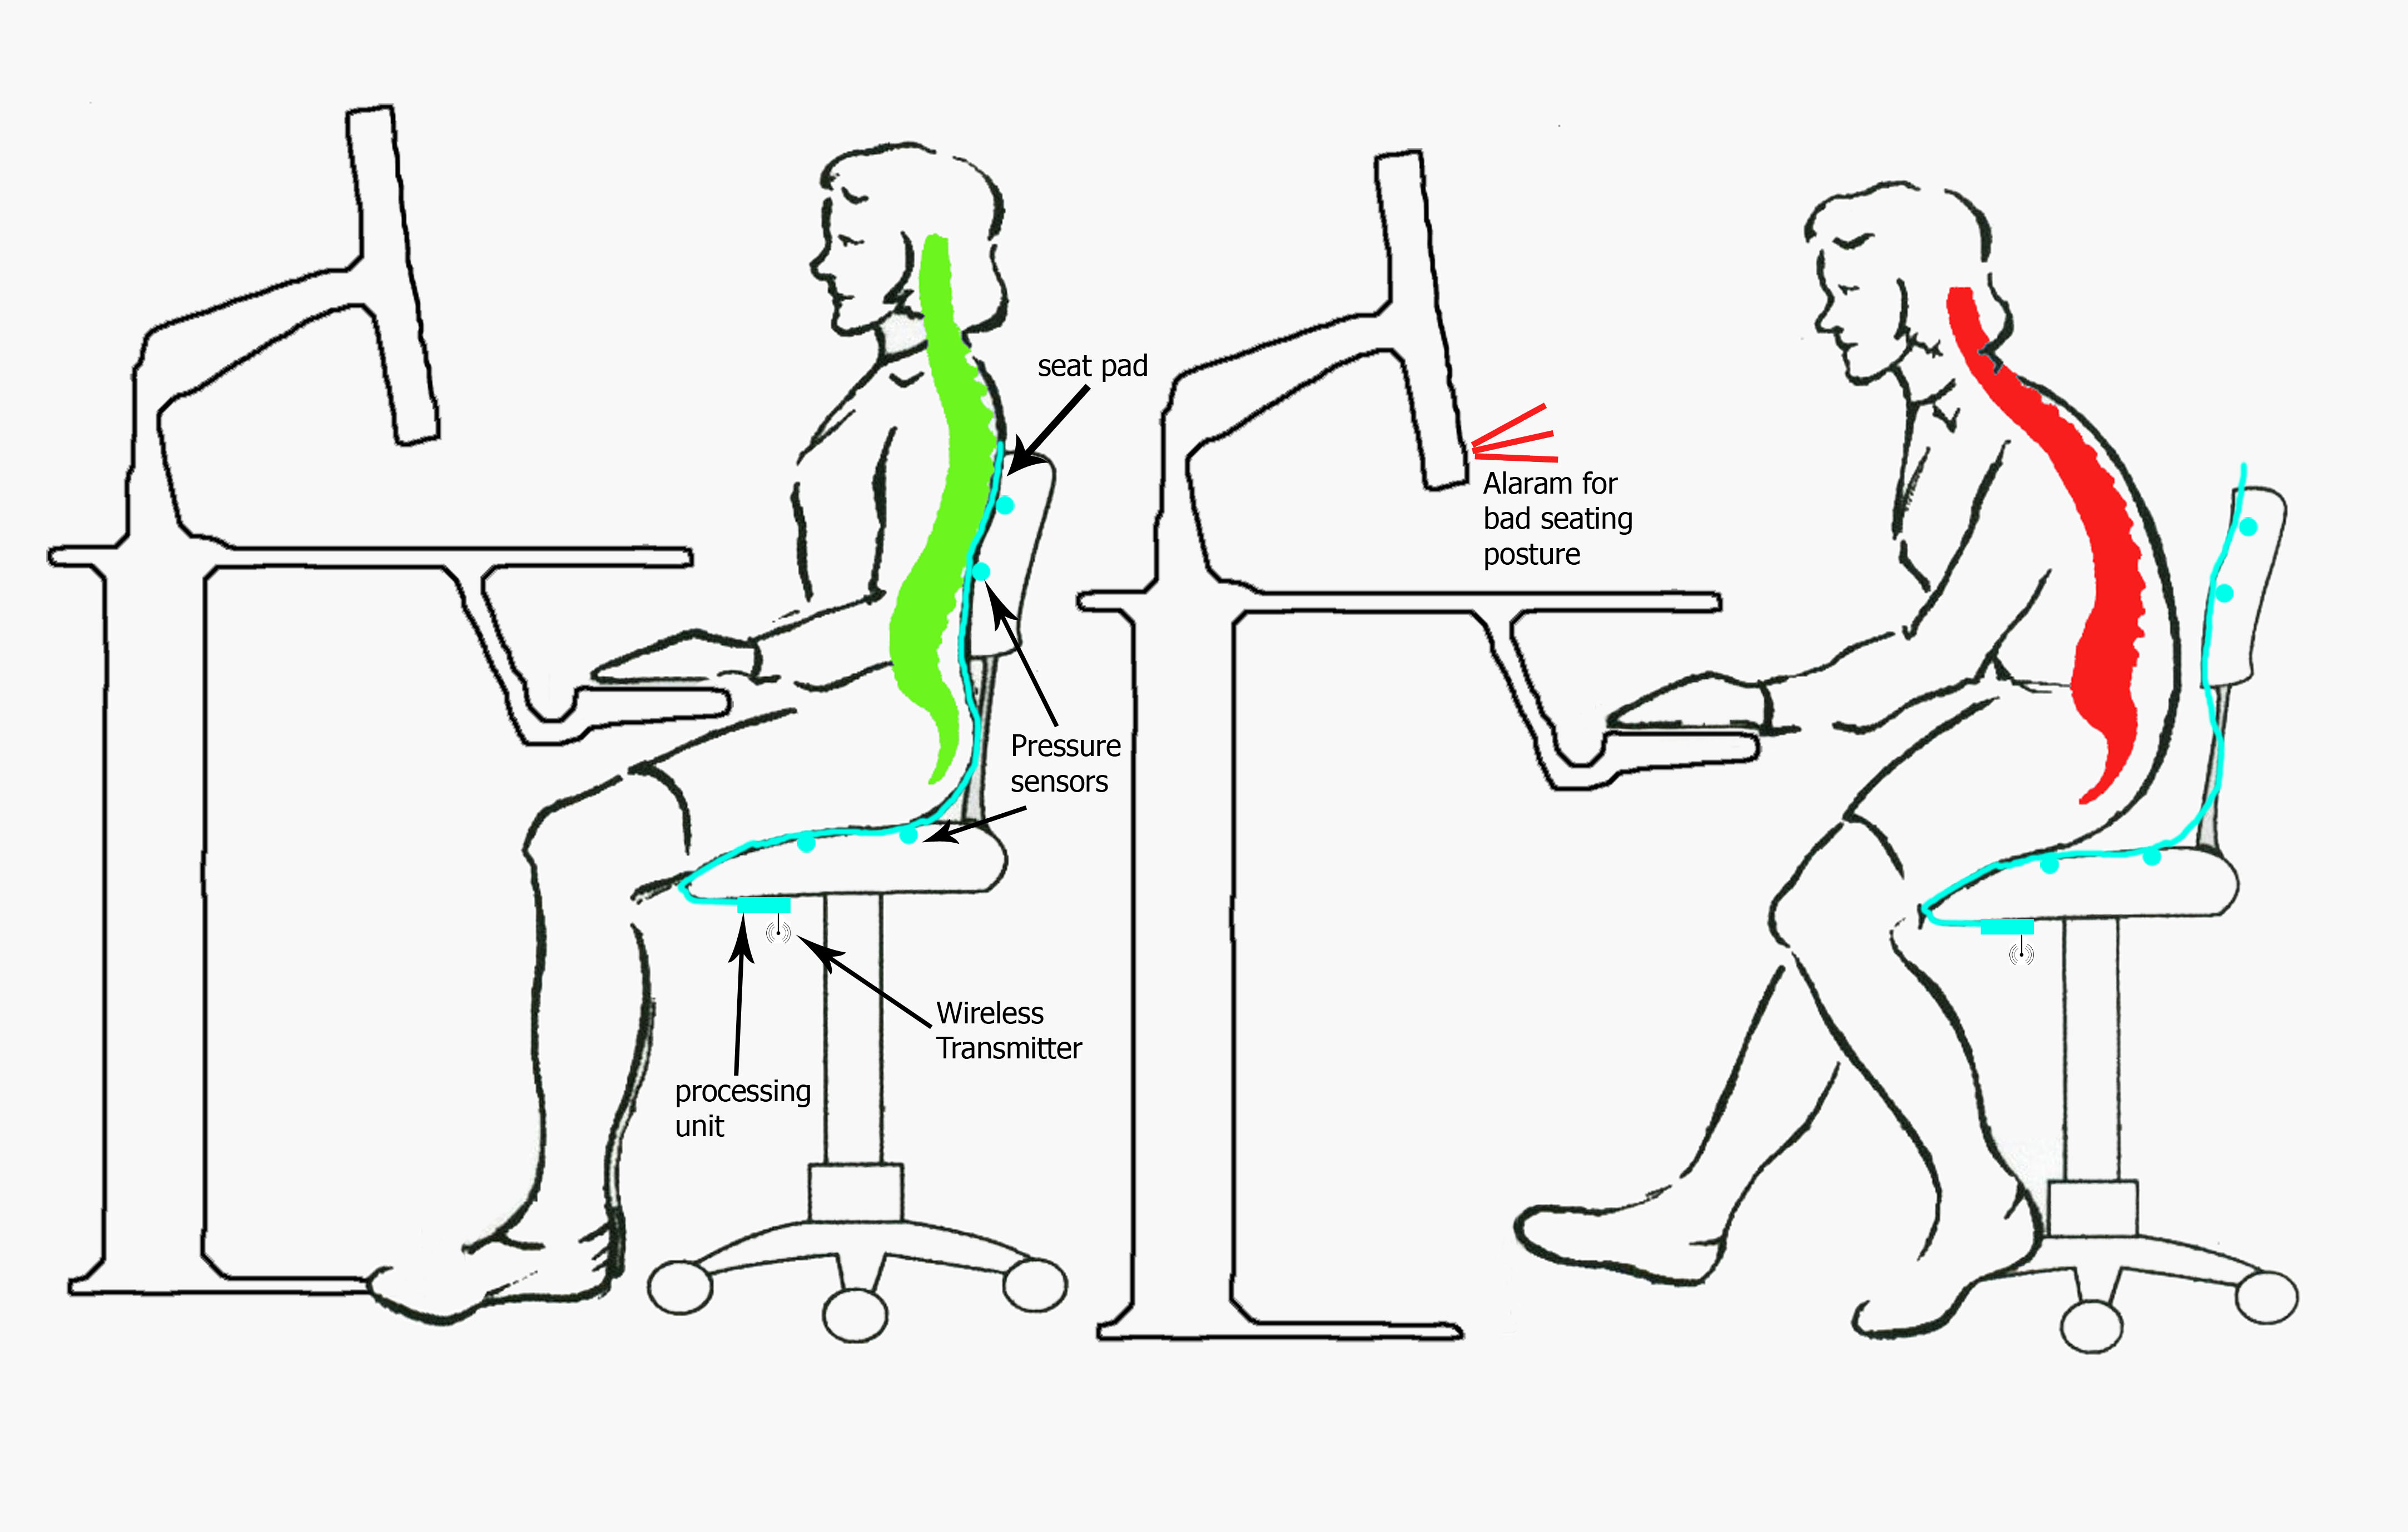 posture monitoring chair red barrel smart seat pad for create the future design contest